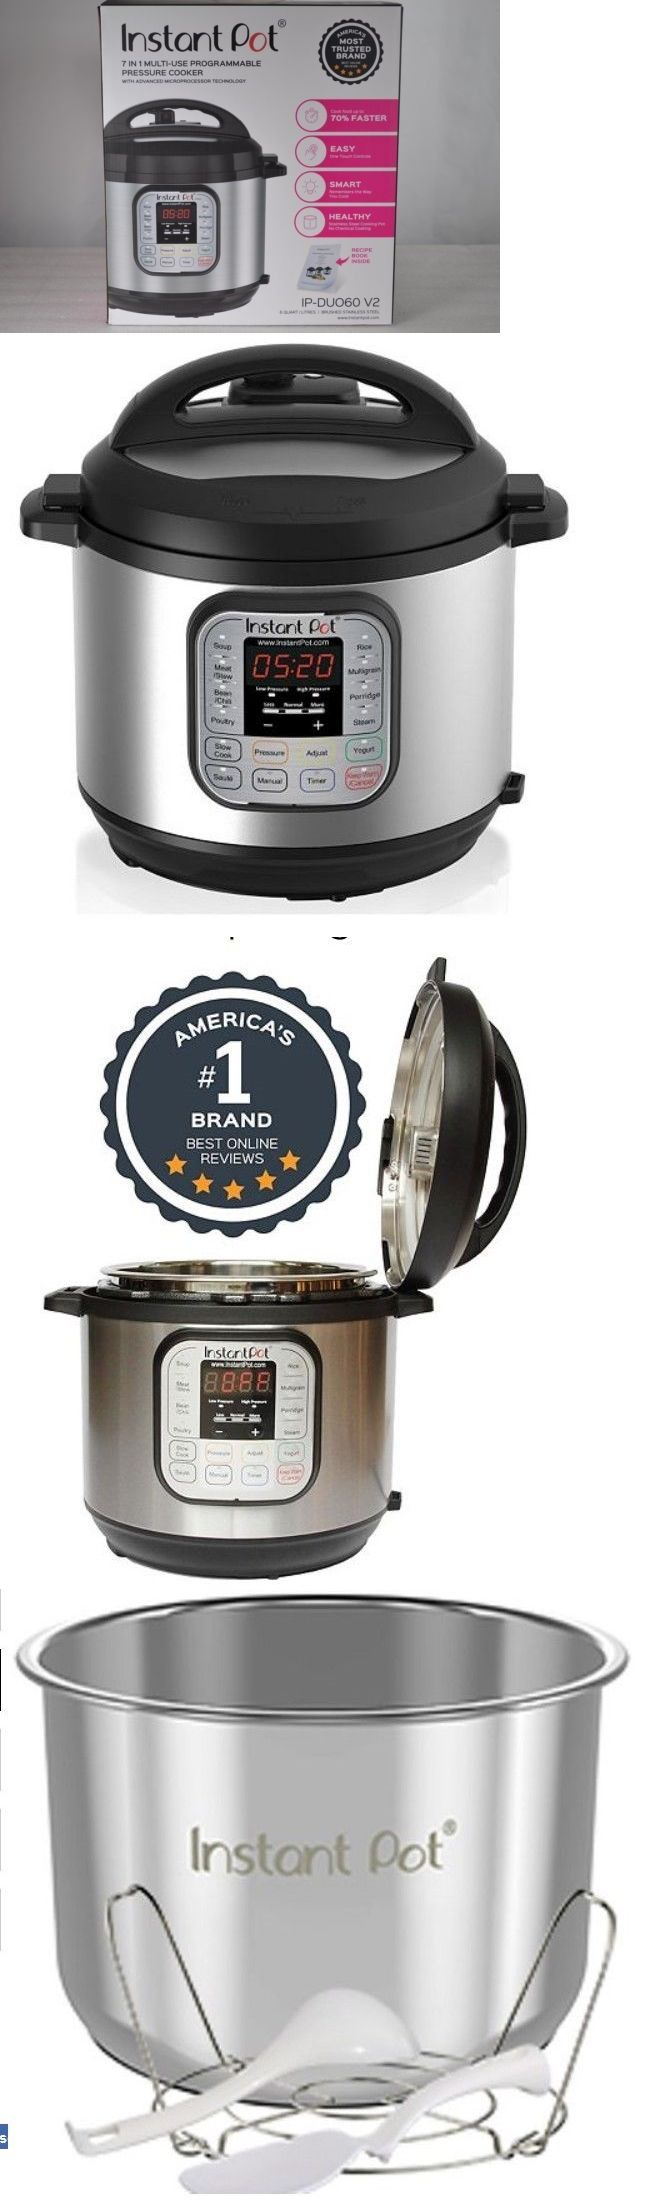 Cookers and Steamers 20672: Instant Pot Ip-Duo60 V2 Programmable Electric Pressure Cooker, 6Qt, 7 In1 Cooker -> BUY IT NOW ONLY: $64.99 on eBay!